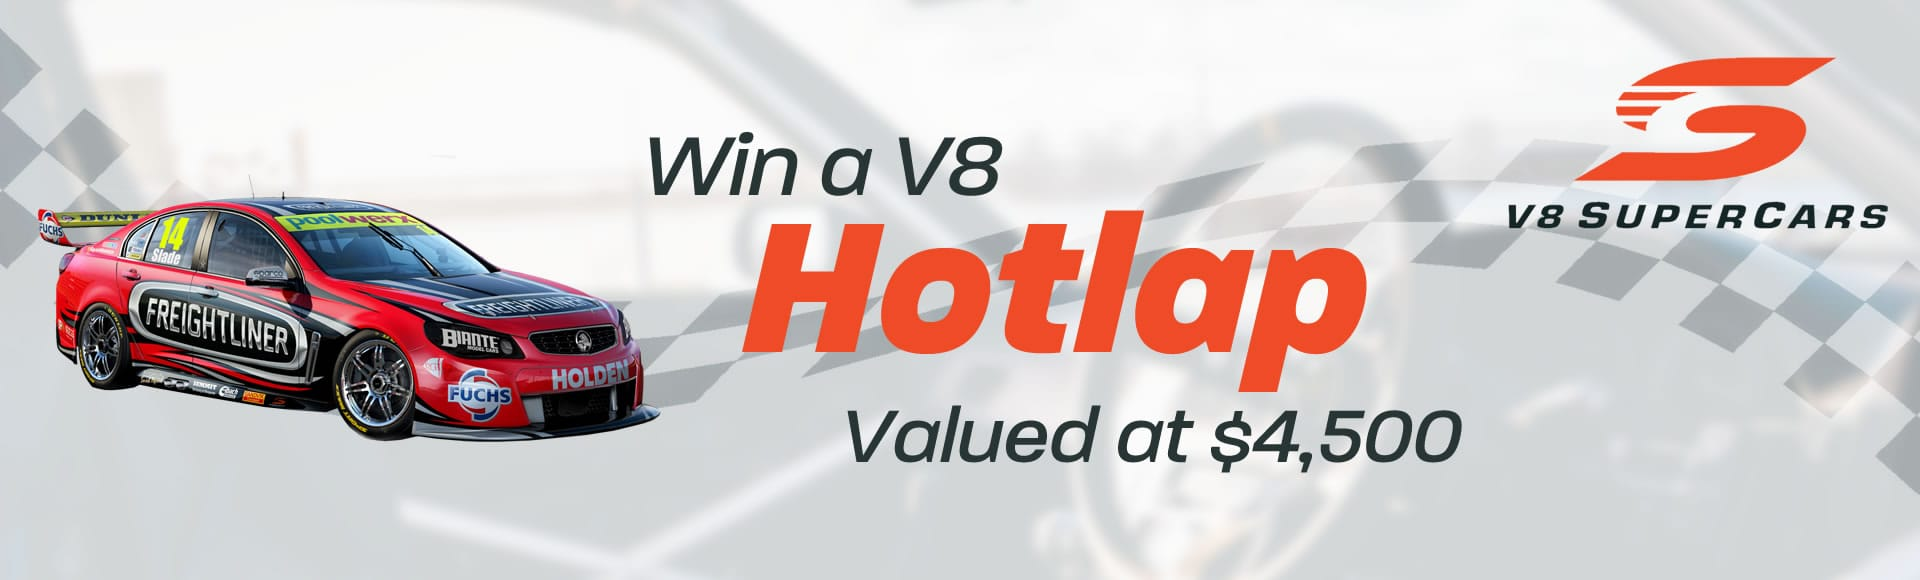 V8 Supercar Hotlap Competition